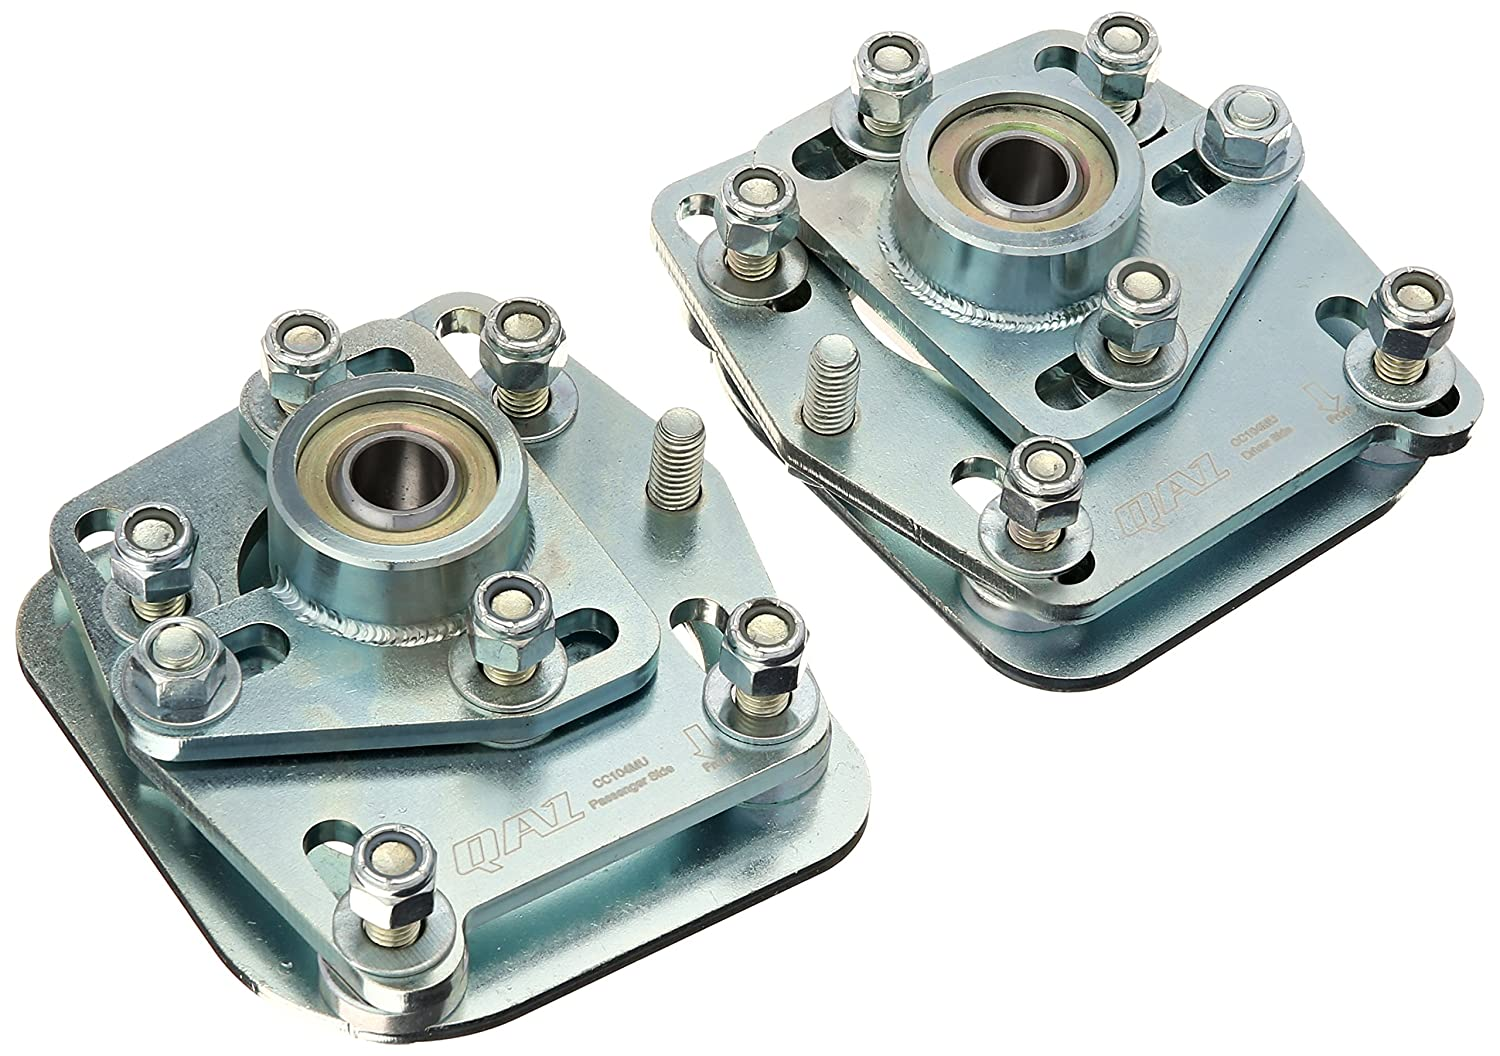 QA1 CC104MU Caster/Camber Plate for Mustang